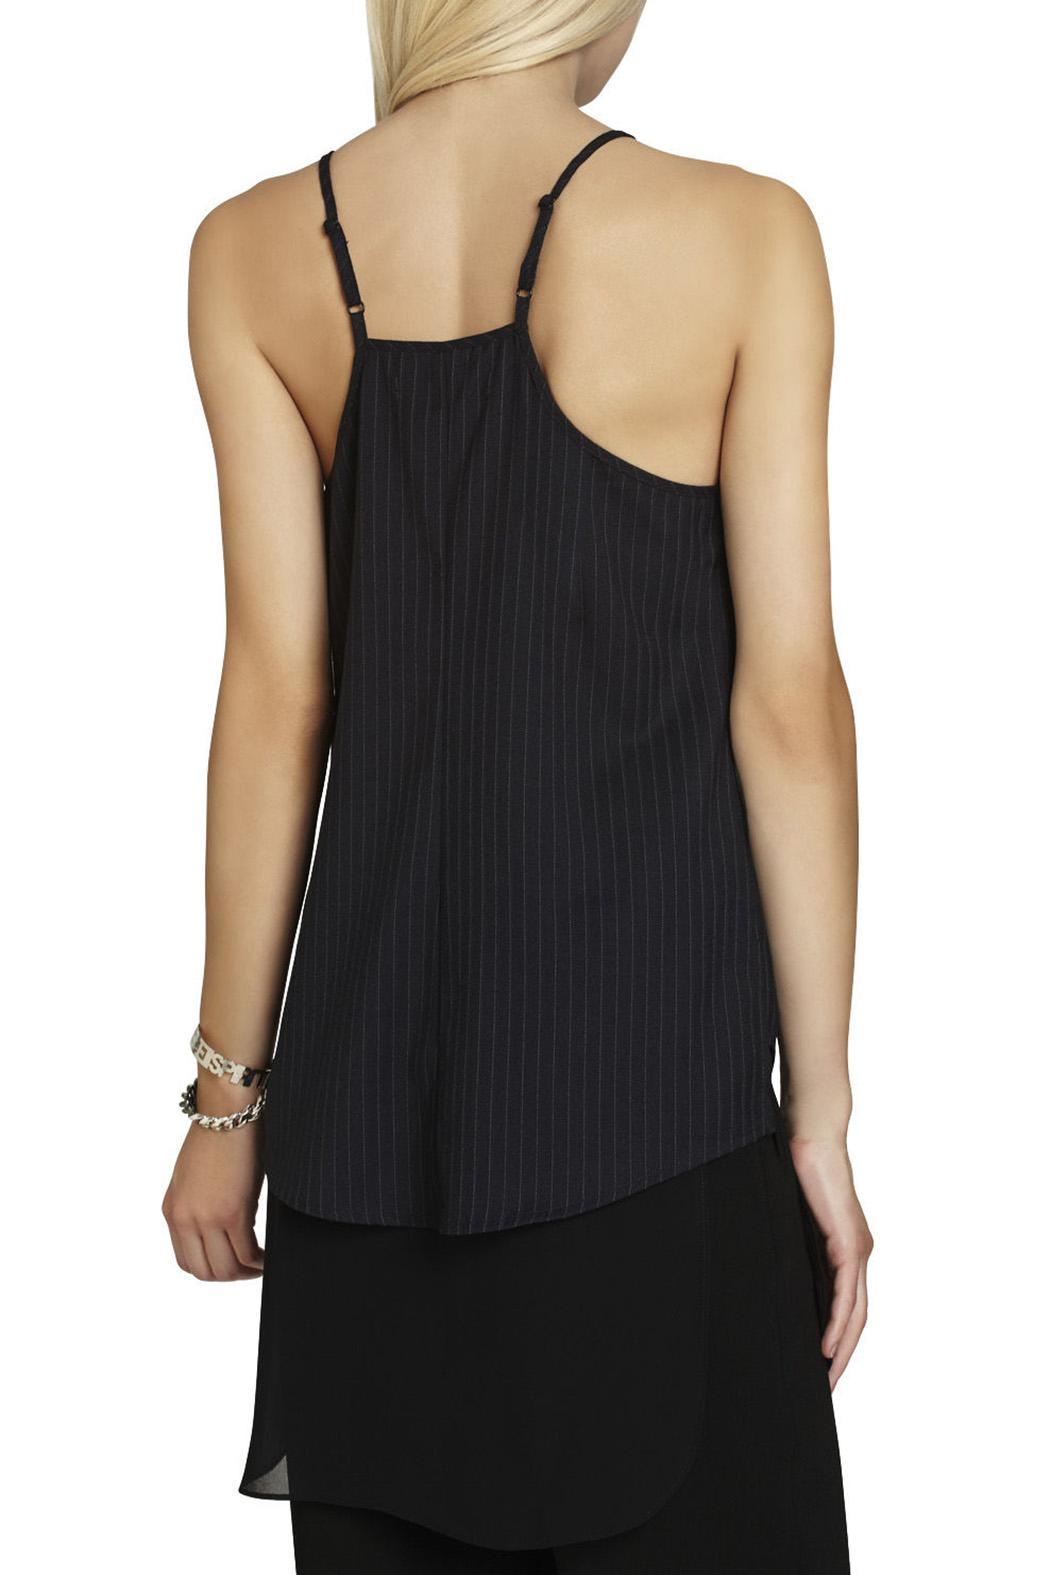 BCBGeneration High-Neck Slip Top - Front Full Image